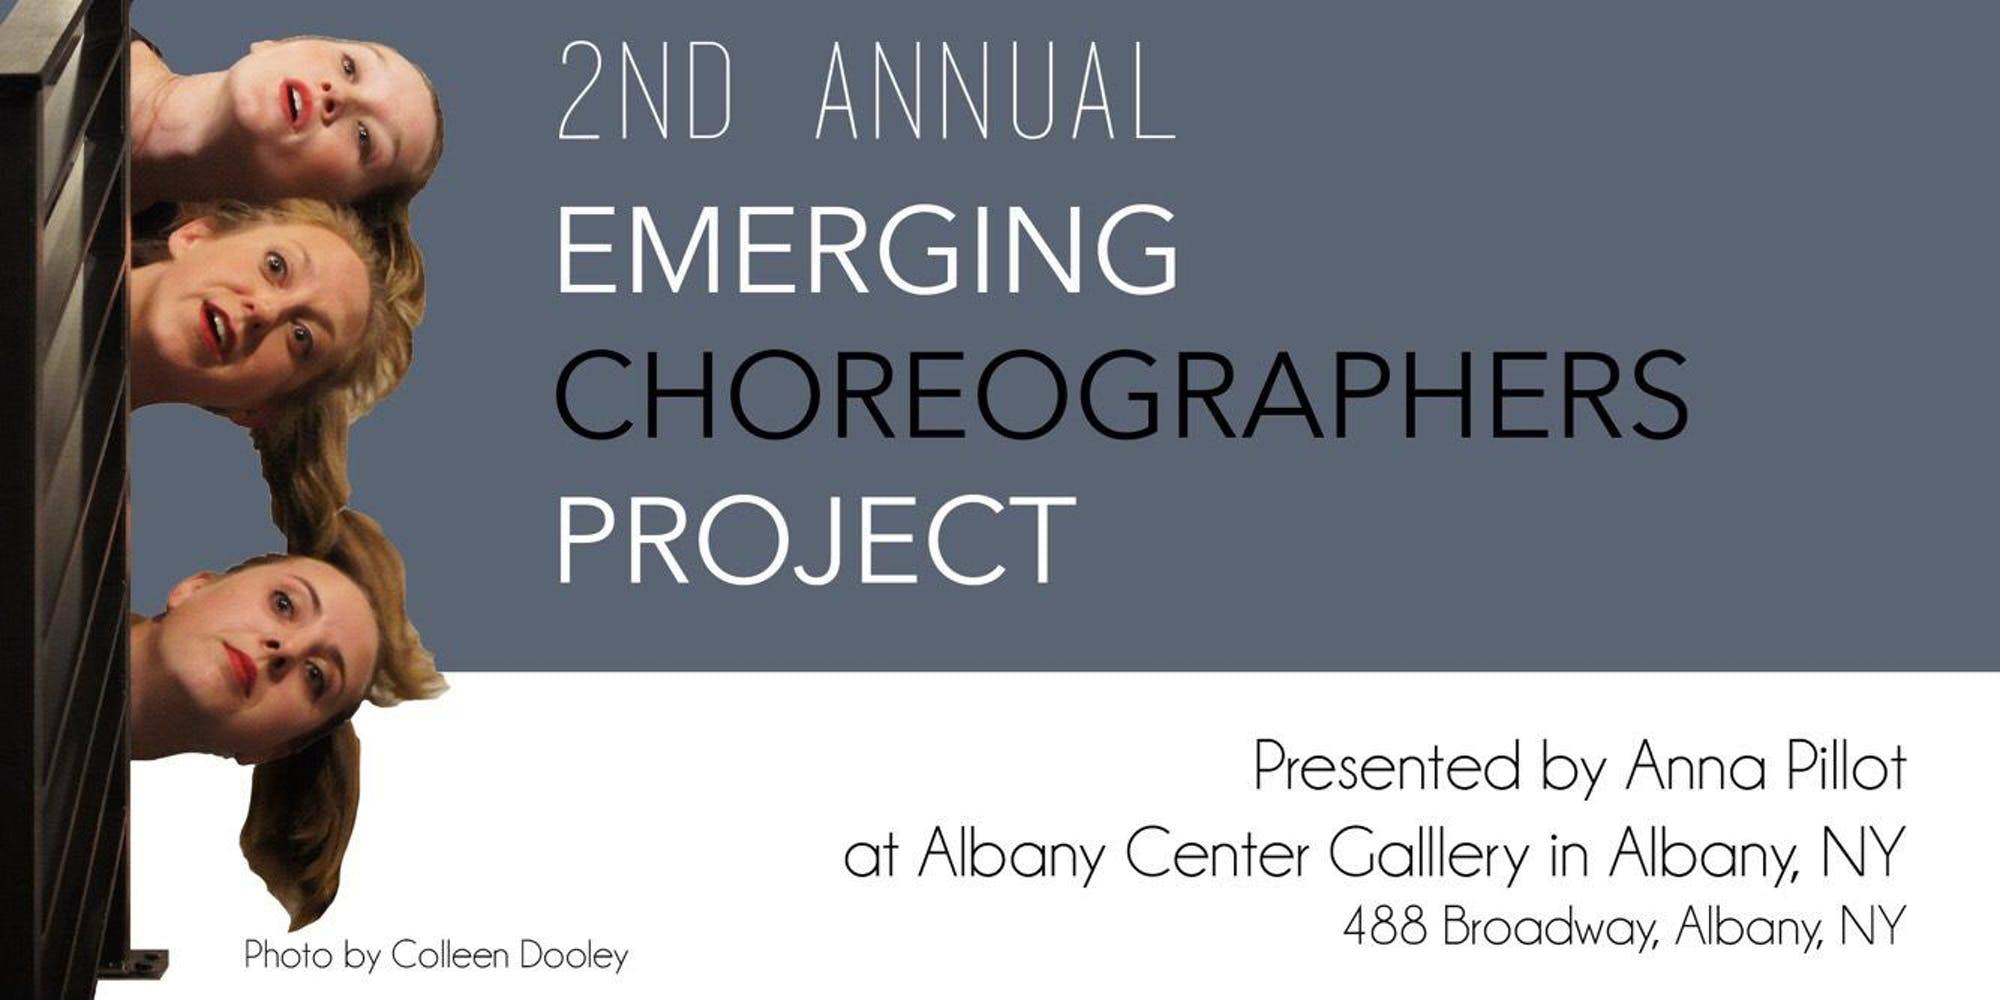 2nd Annual Emerging Choreographers Project